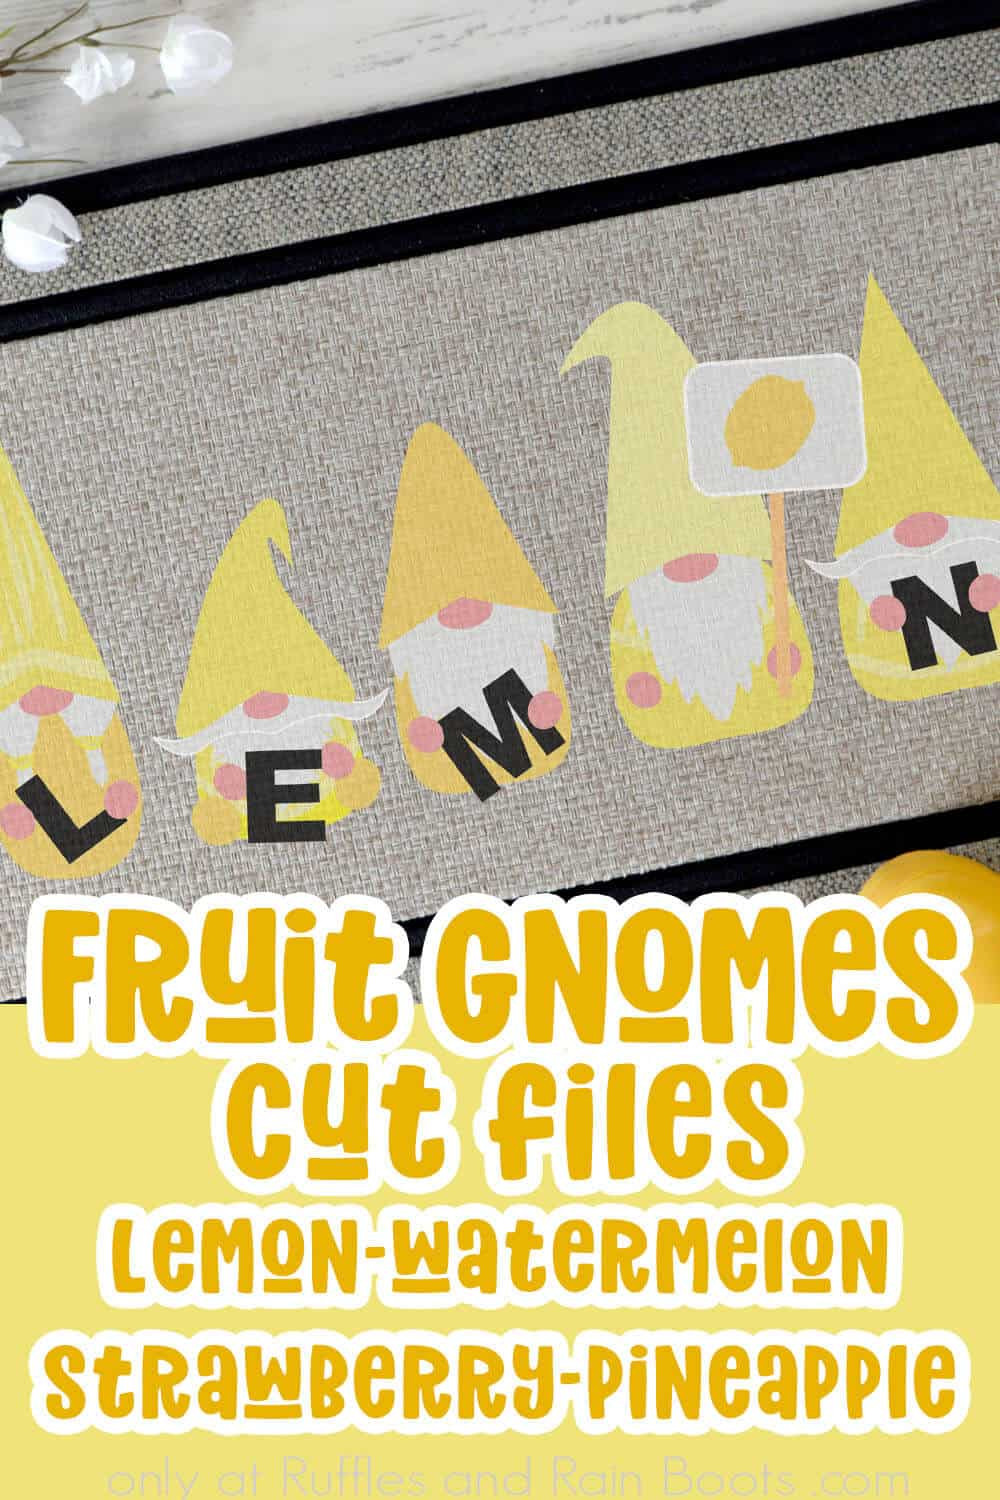 lemon gnome svg set on a door mat with text which reads fruit gnomes cut files lemon watermelon strawberry pineapple